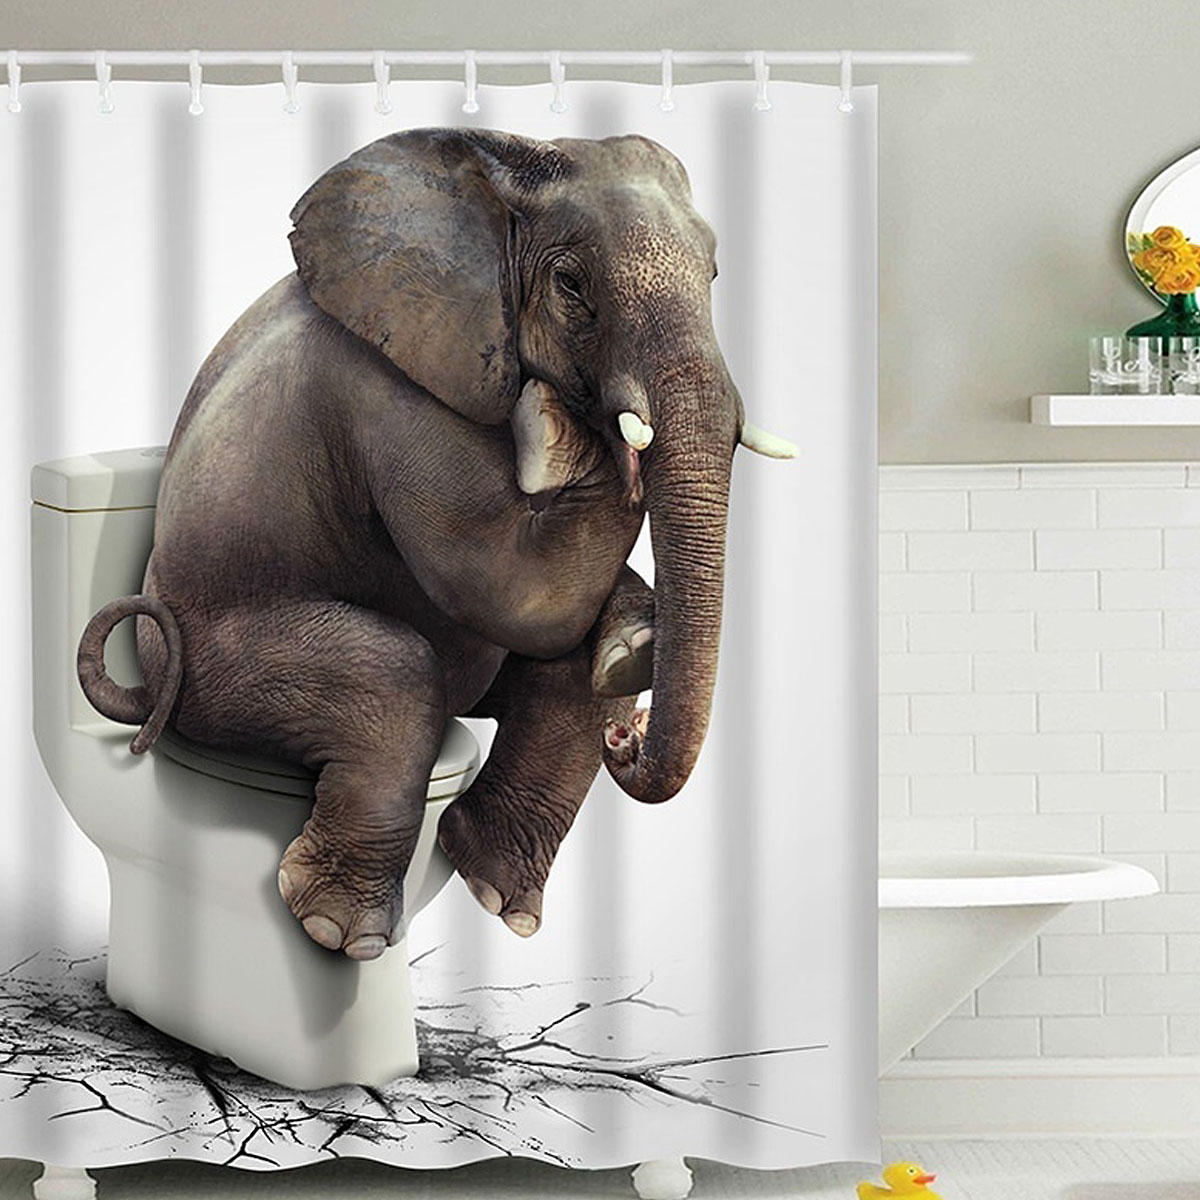 180x180CM Elephant Waterproof Bathroom Shower Curtain 12 Hooks COD